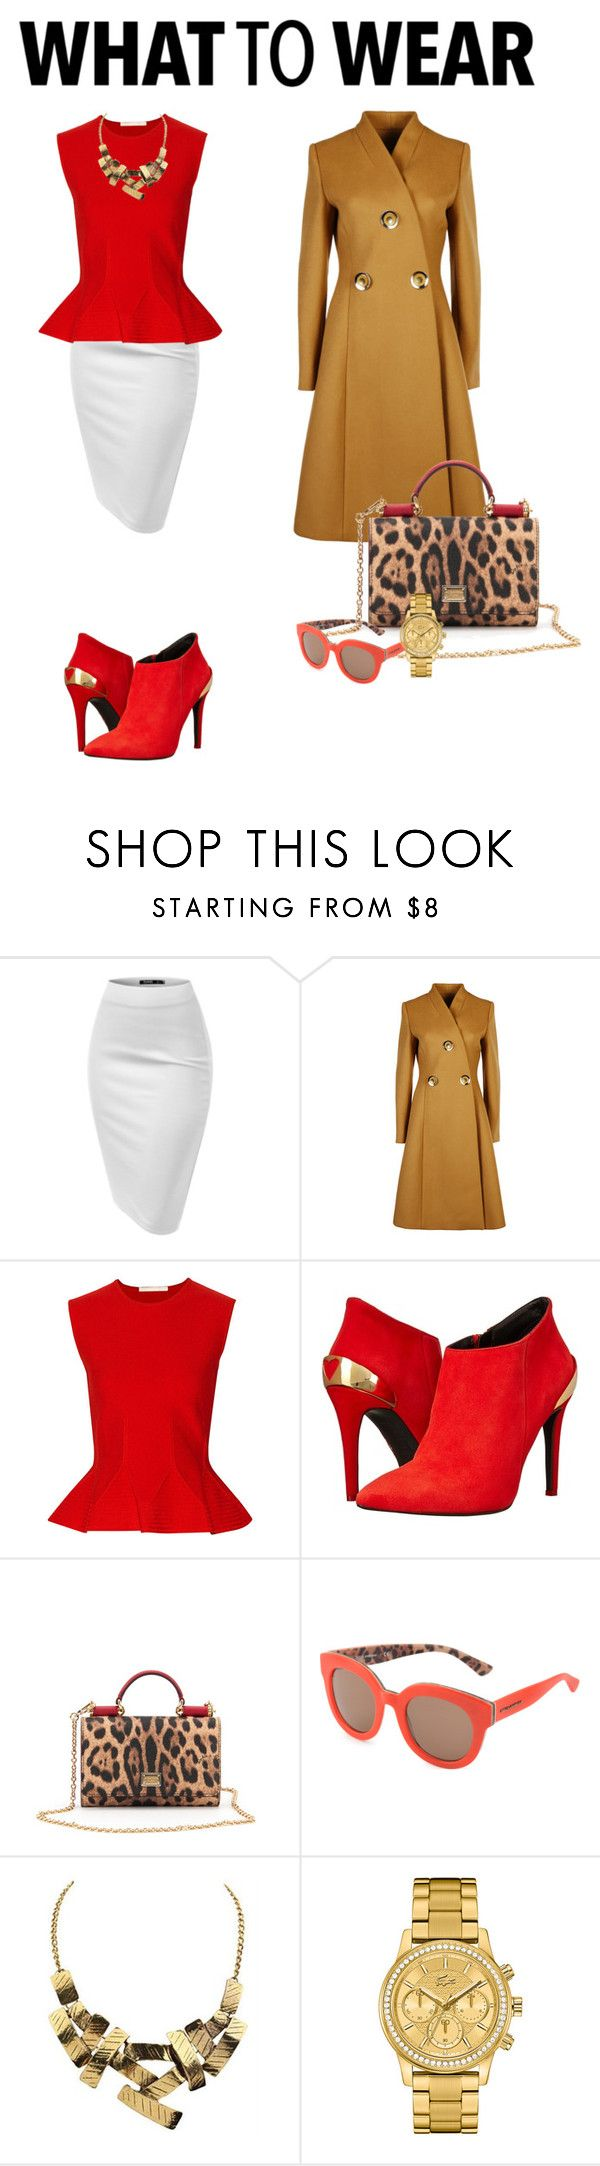 What to wear: black friday shopping by adriana-claudia on Polyvore featuring Antonio Berardi, STELLA McCARTNEY, Love Moschino, Lacoste, Dolce&Gabbana and shoptilyoudrop